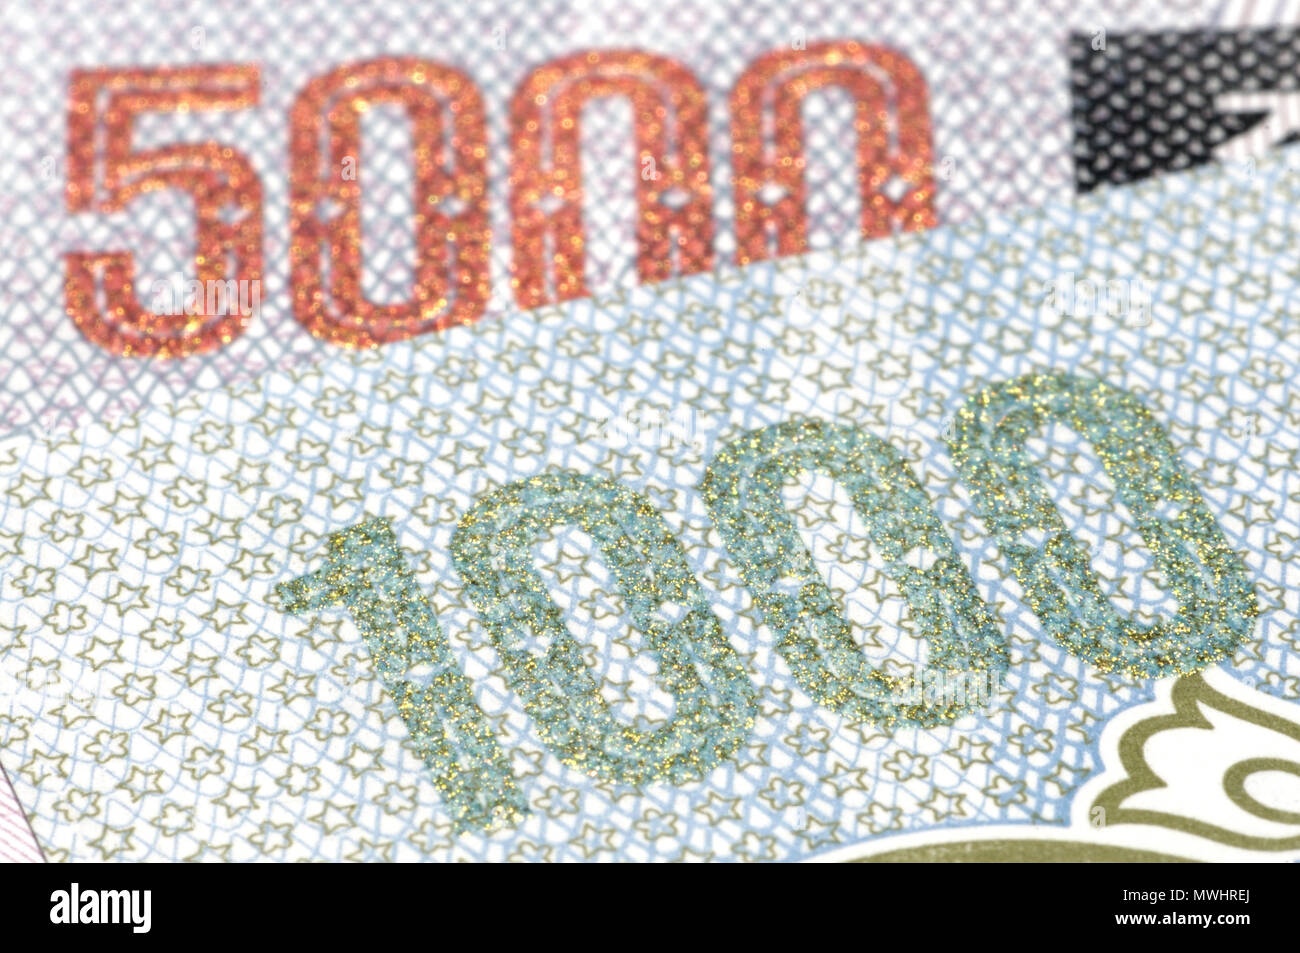 Detail from North Korean banknotes showing 1000 and 5000 in reflective raised ink - Stock Image